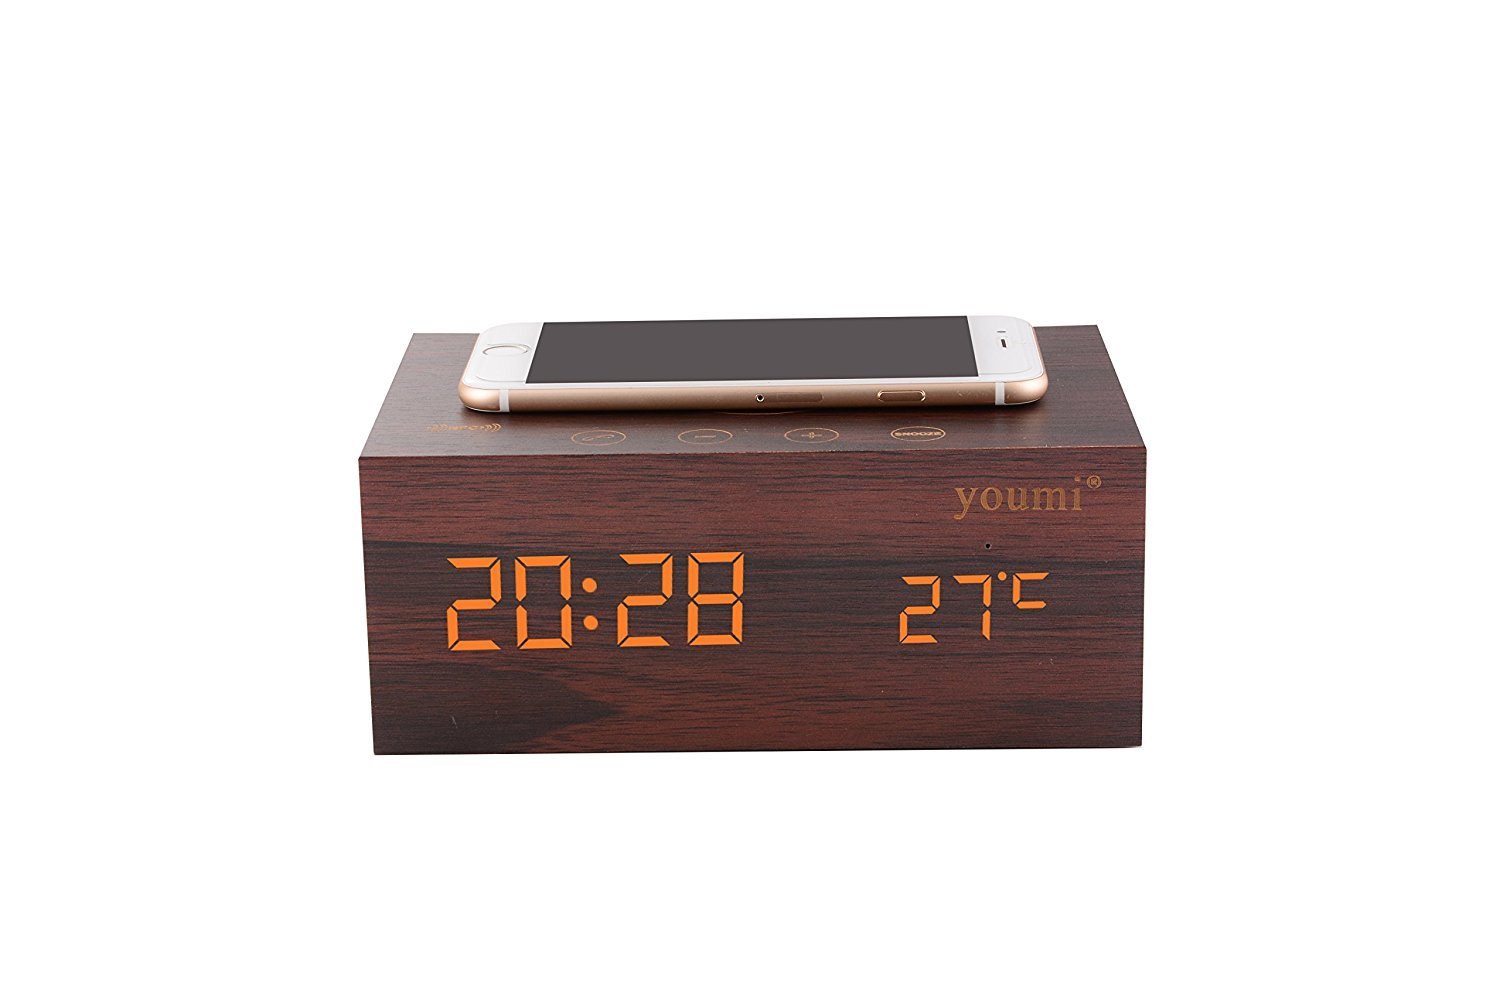 YOUMI Multi-Function Stereo Bluetooth Wooded Environmental Speaker Wireless Charger with Built in Mic, Thermometer,Clock, NFC and LED Time Display for Smart Phones, MP3 Players,And More (Brown)